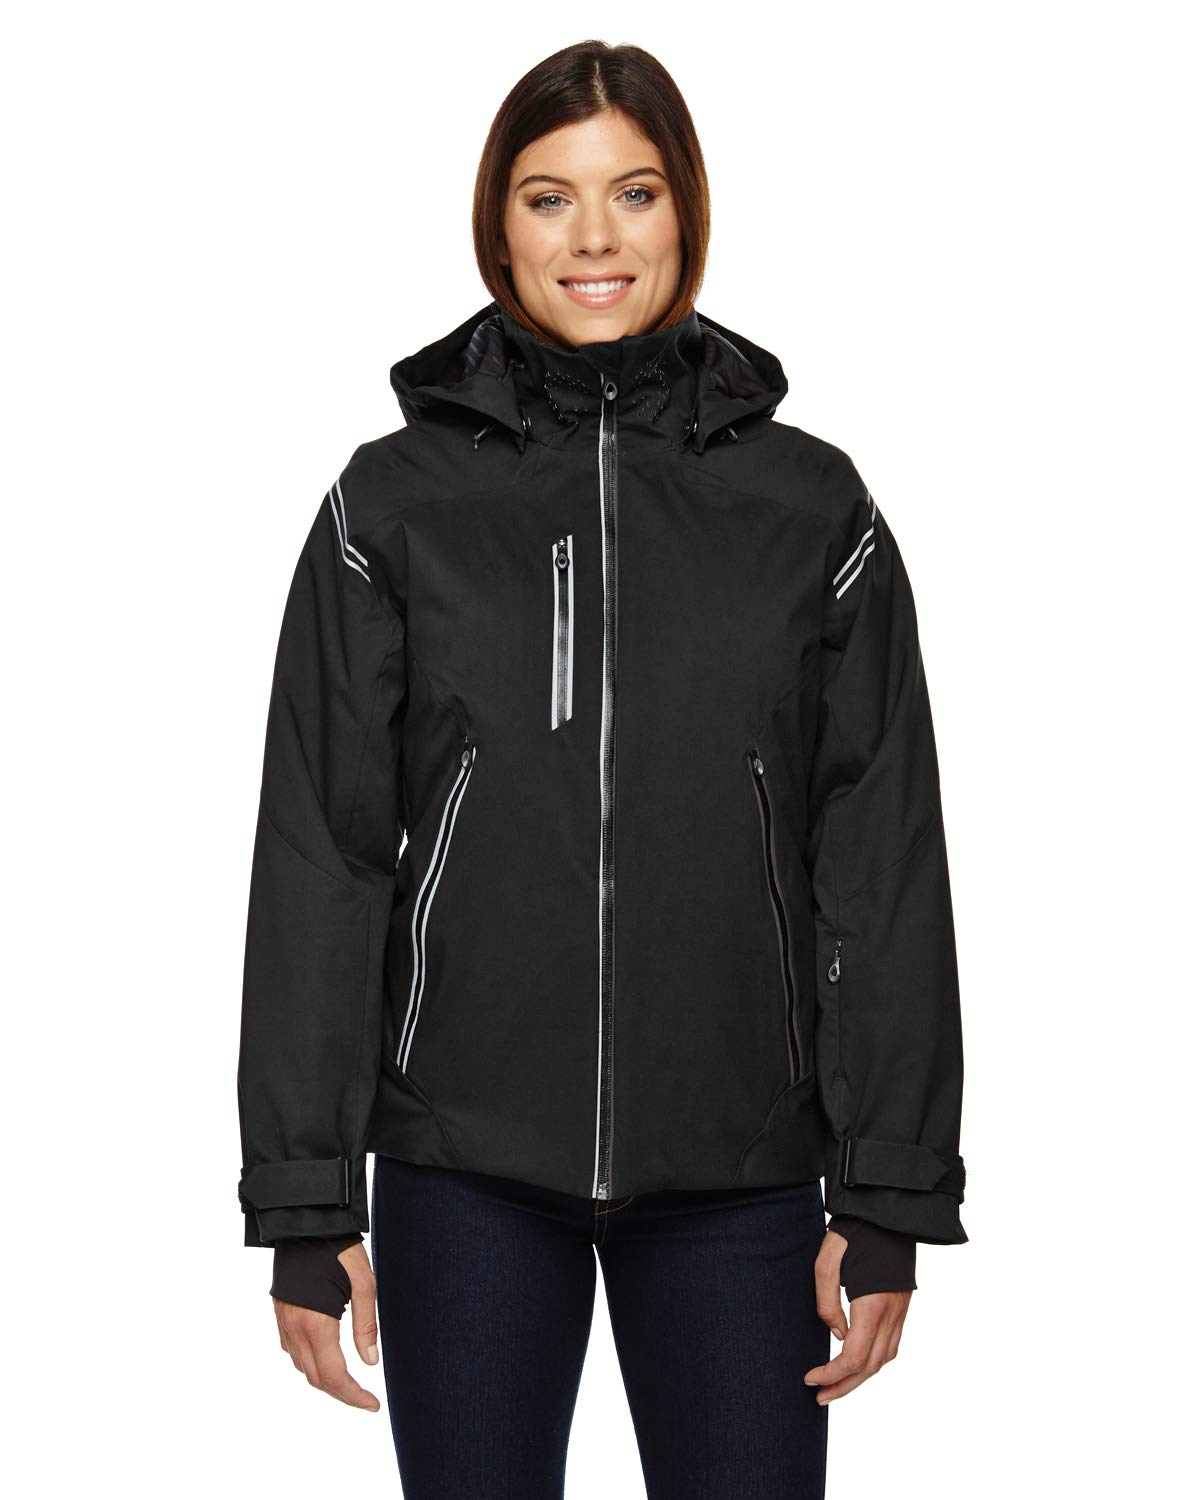 Ash City Ladies Ventilate Insulated Jacket (X-Small, Black)